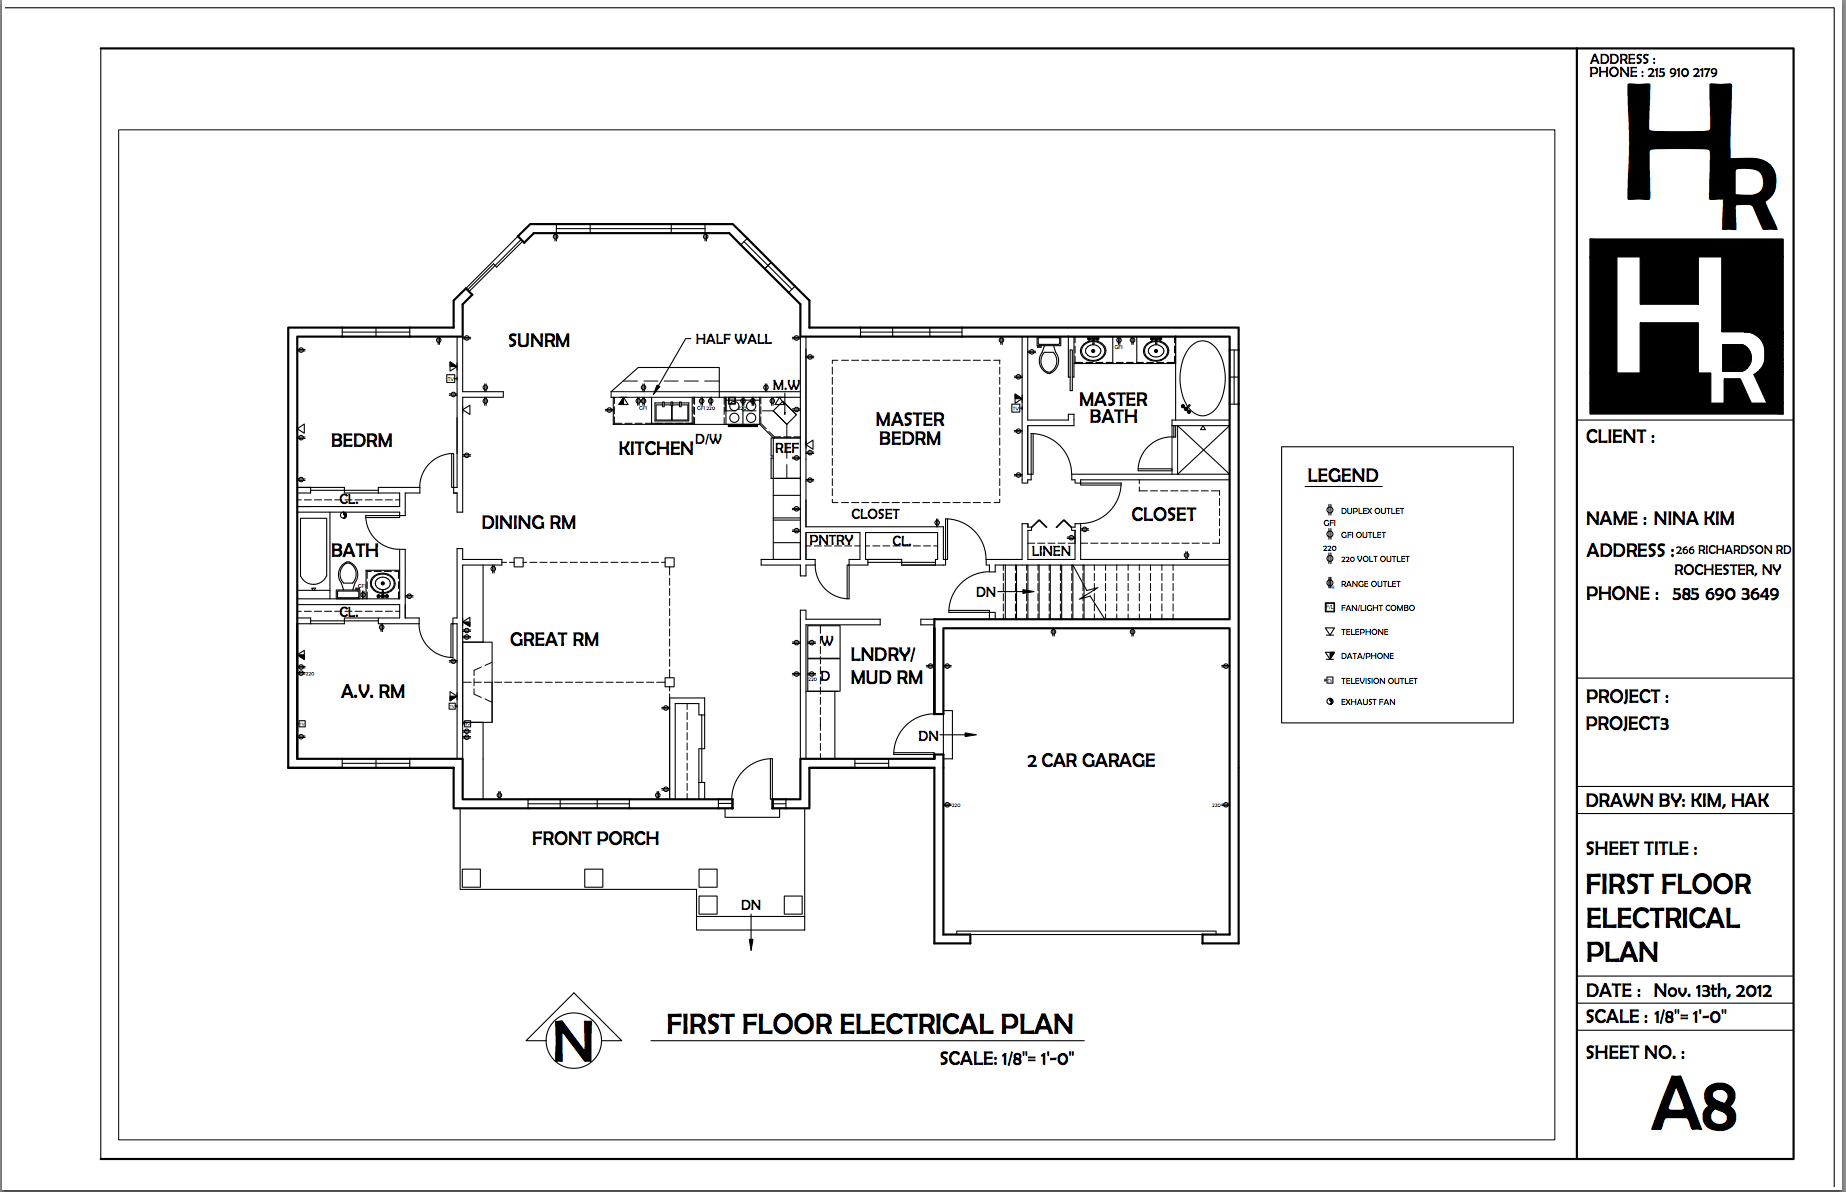 hight resolution of first floor electrical plan